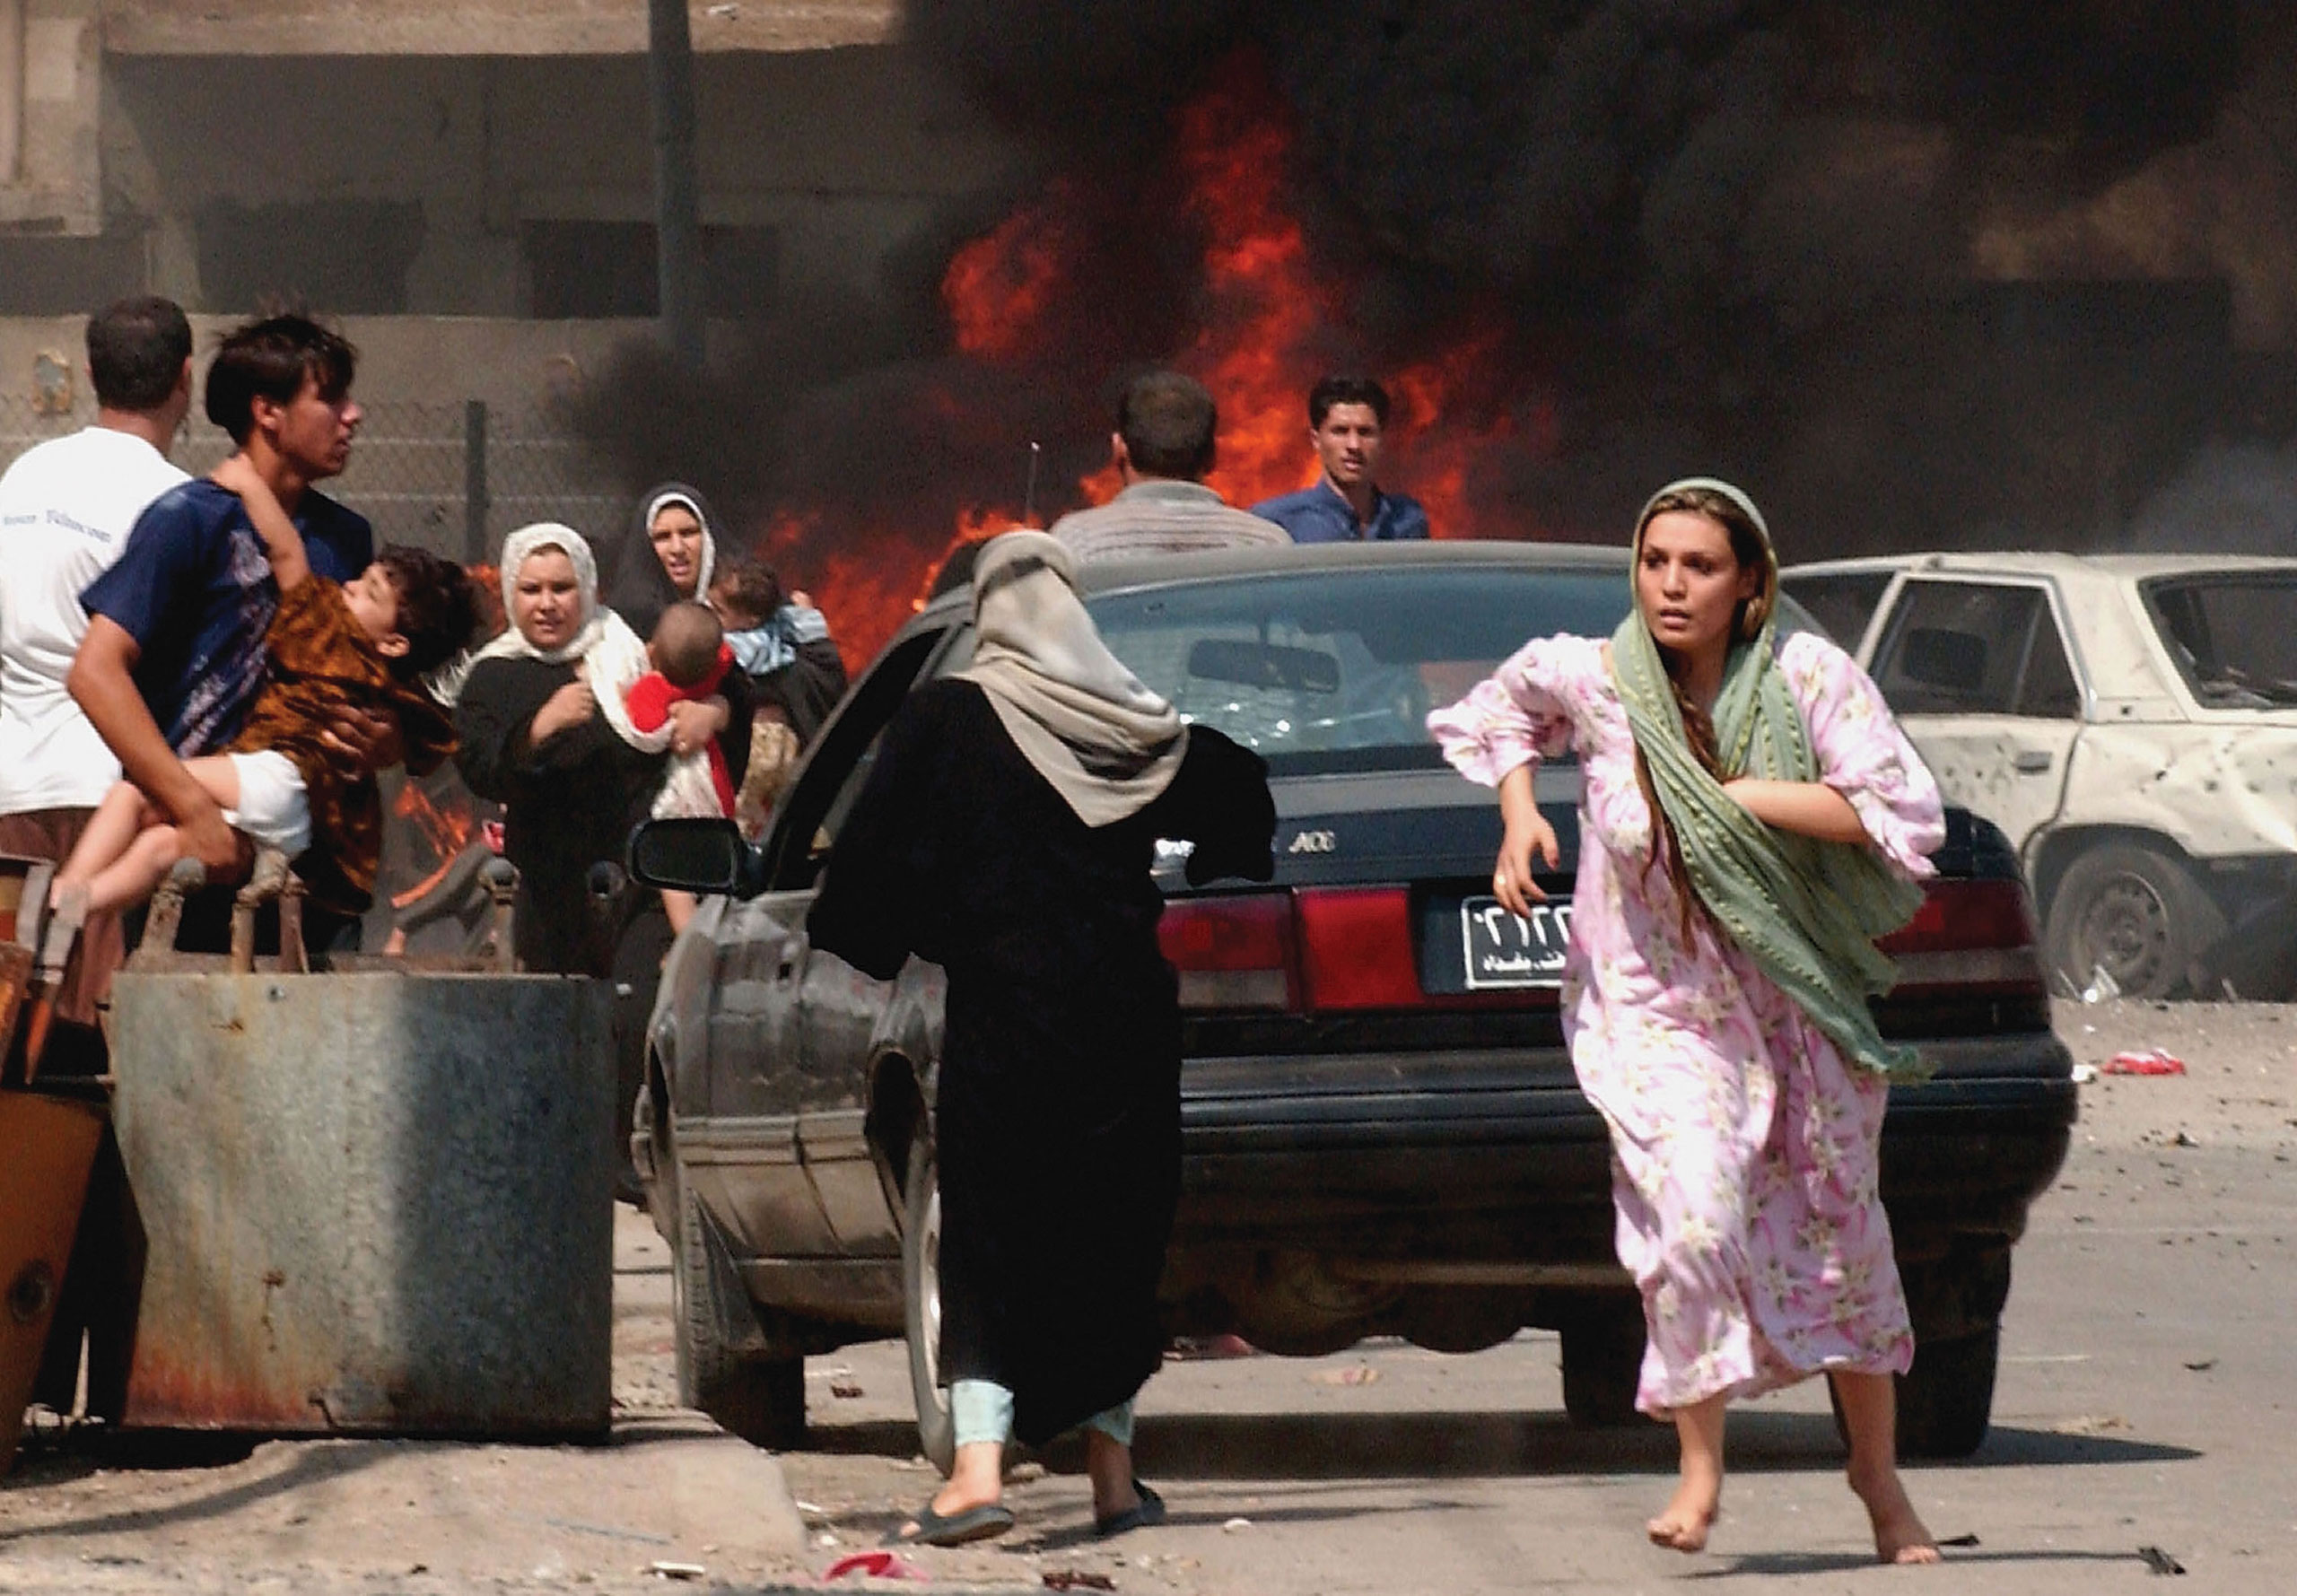 Iraqi citizens flee the scene after three separate explosions targeted a U.S. military convoy during the opening ceremony of a sewage station. The explosions killed at least 35 people and wounded more than 100 others, according to Iraqi police. Baghdad, Iraq, Sept. 30, 2004.